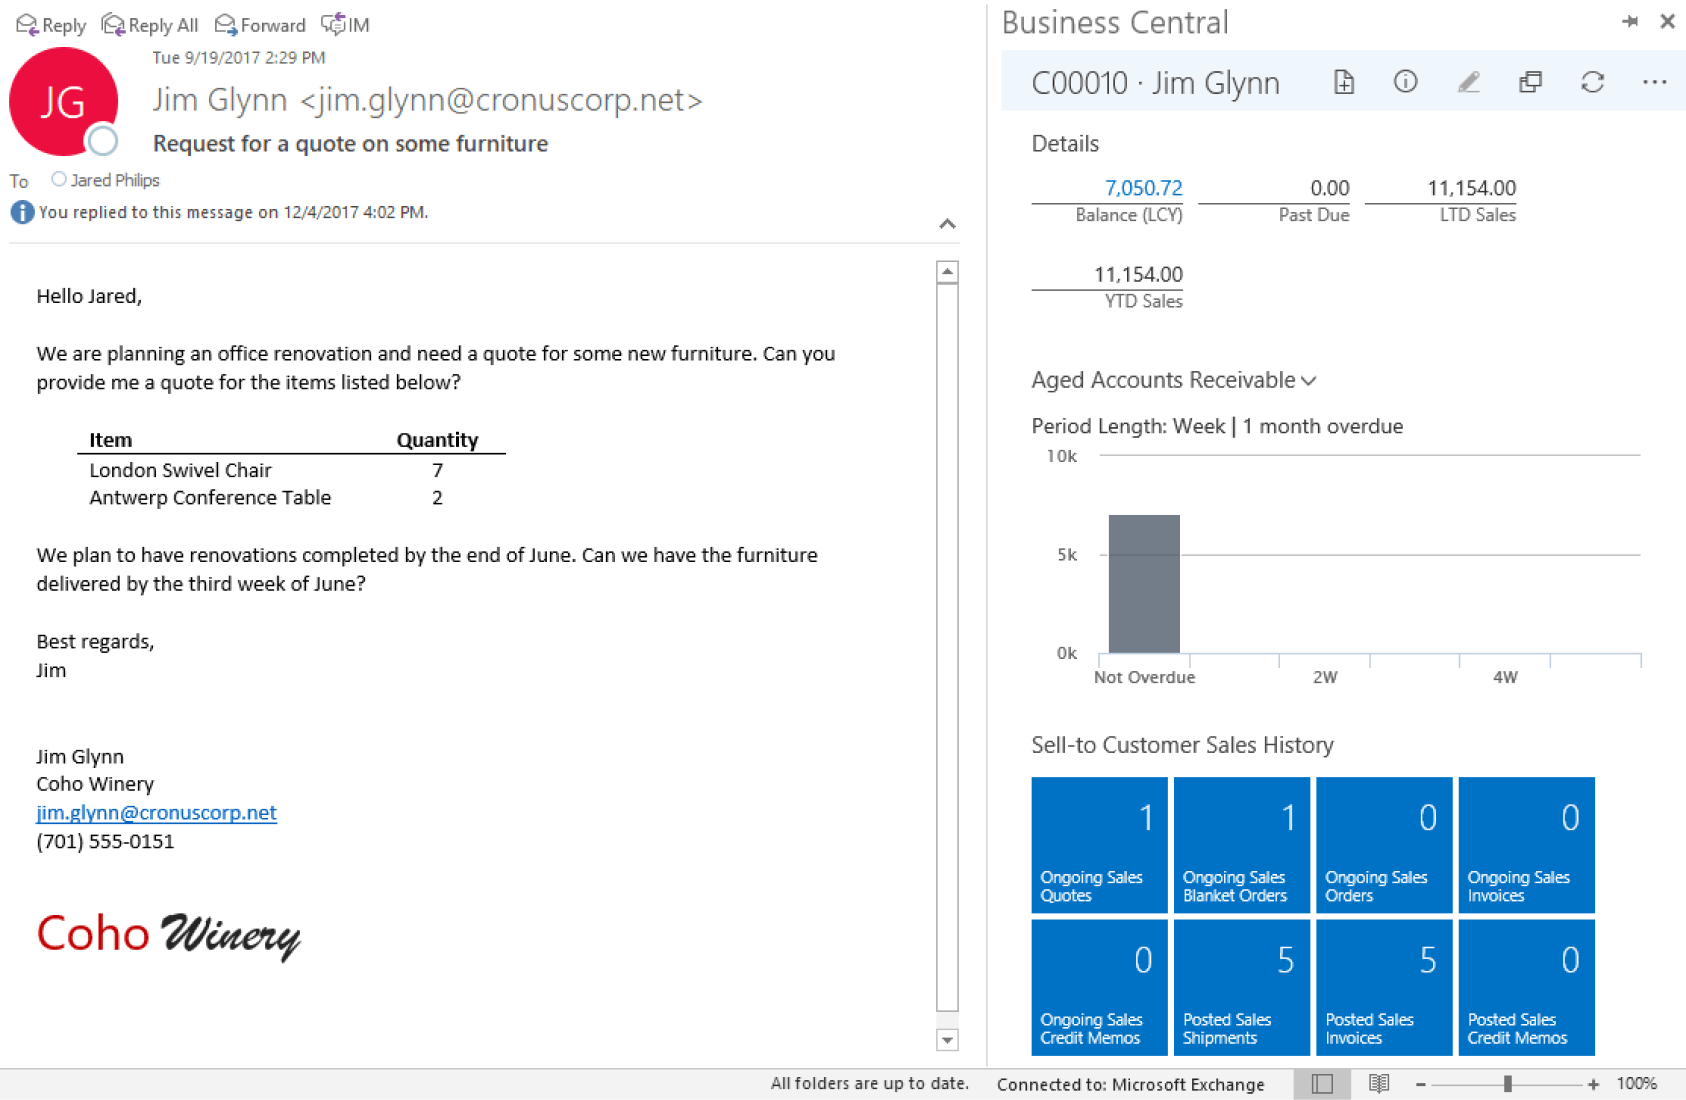 Dynamics 365 Business Central Software - 5